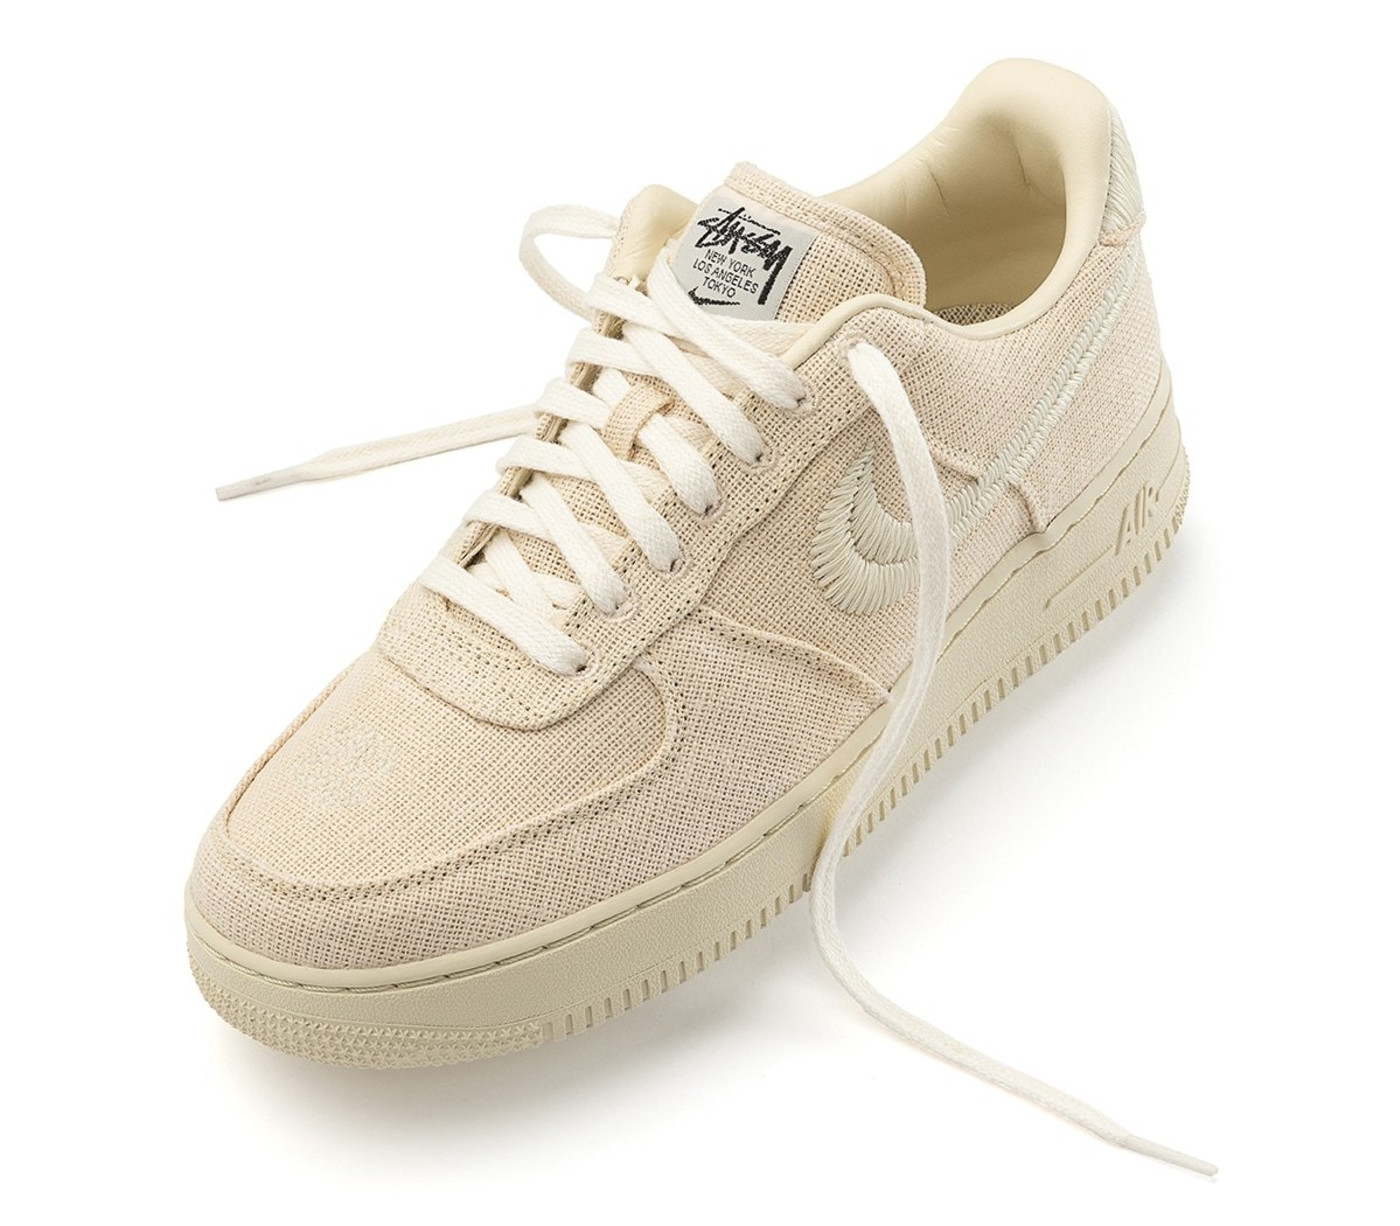 Stussy x Nike Air Force 1 Low 'Fossil Stone' Front